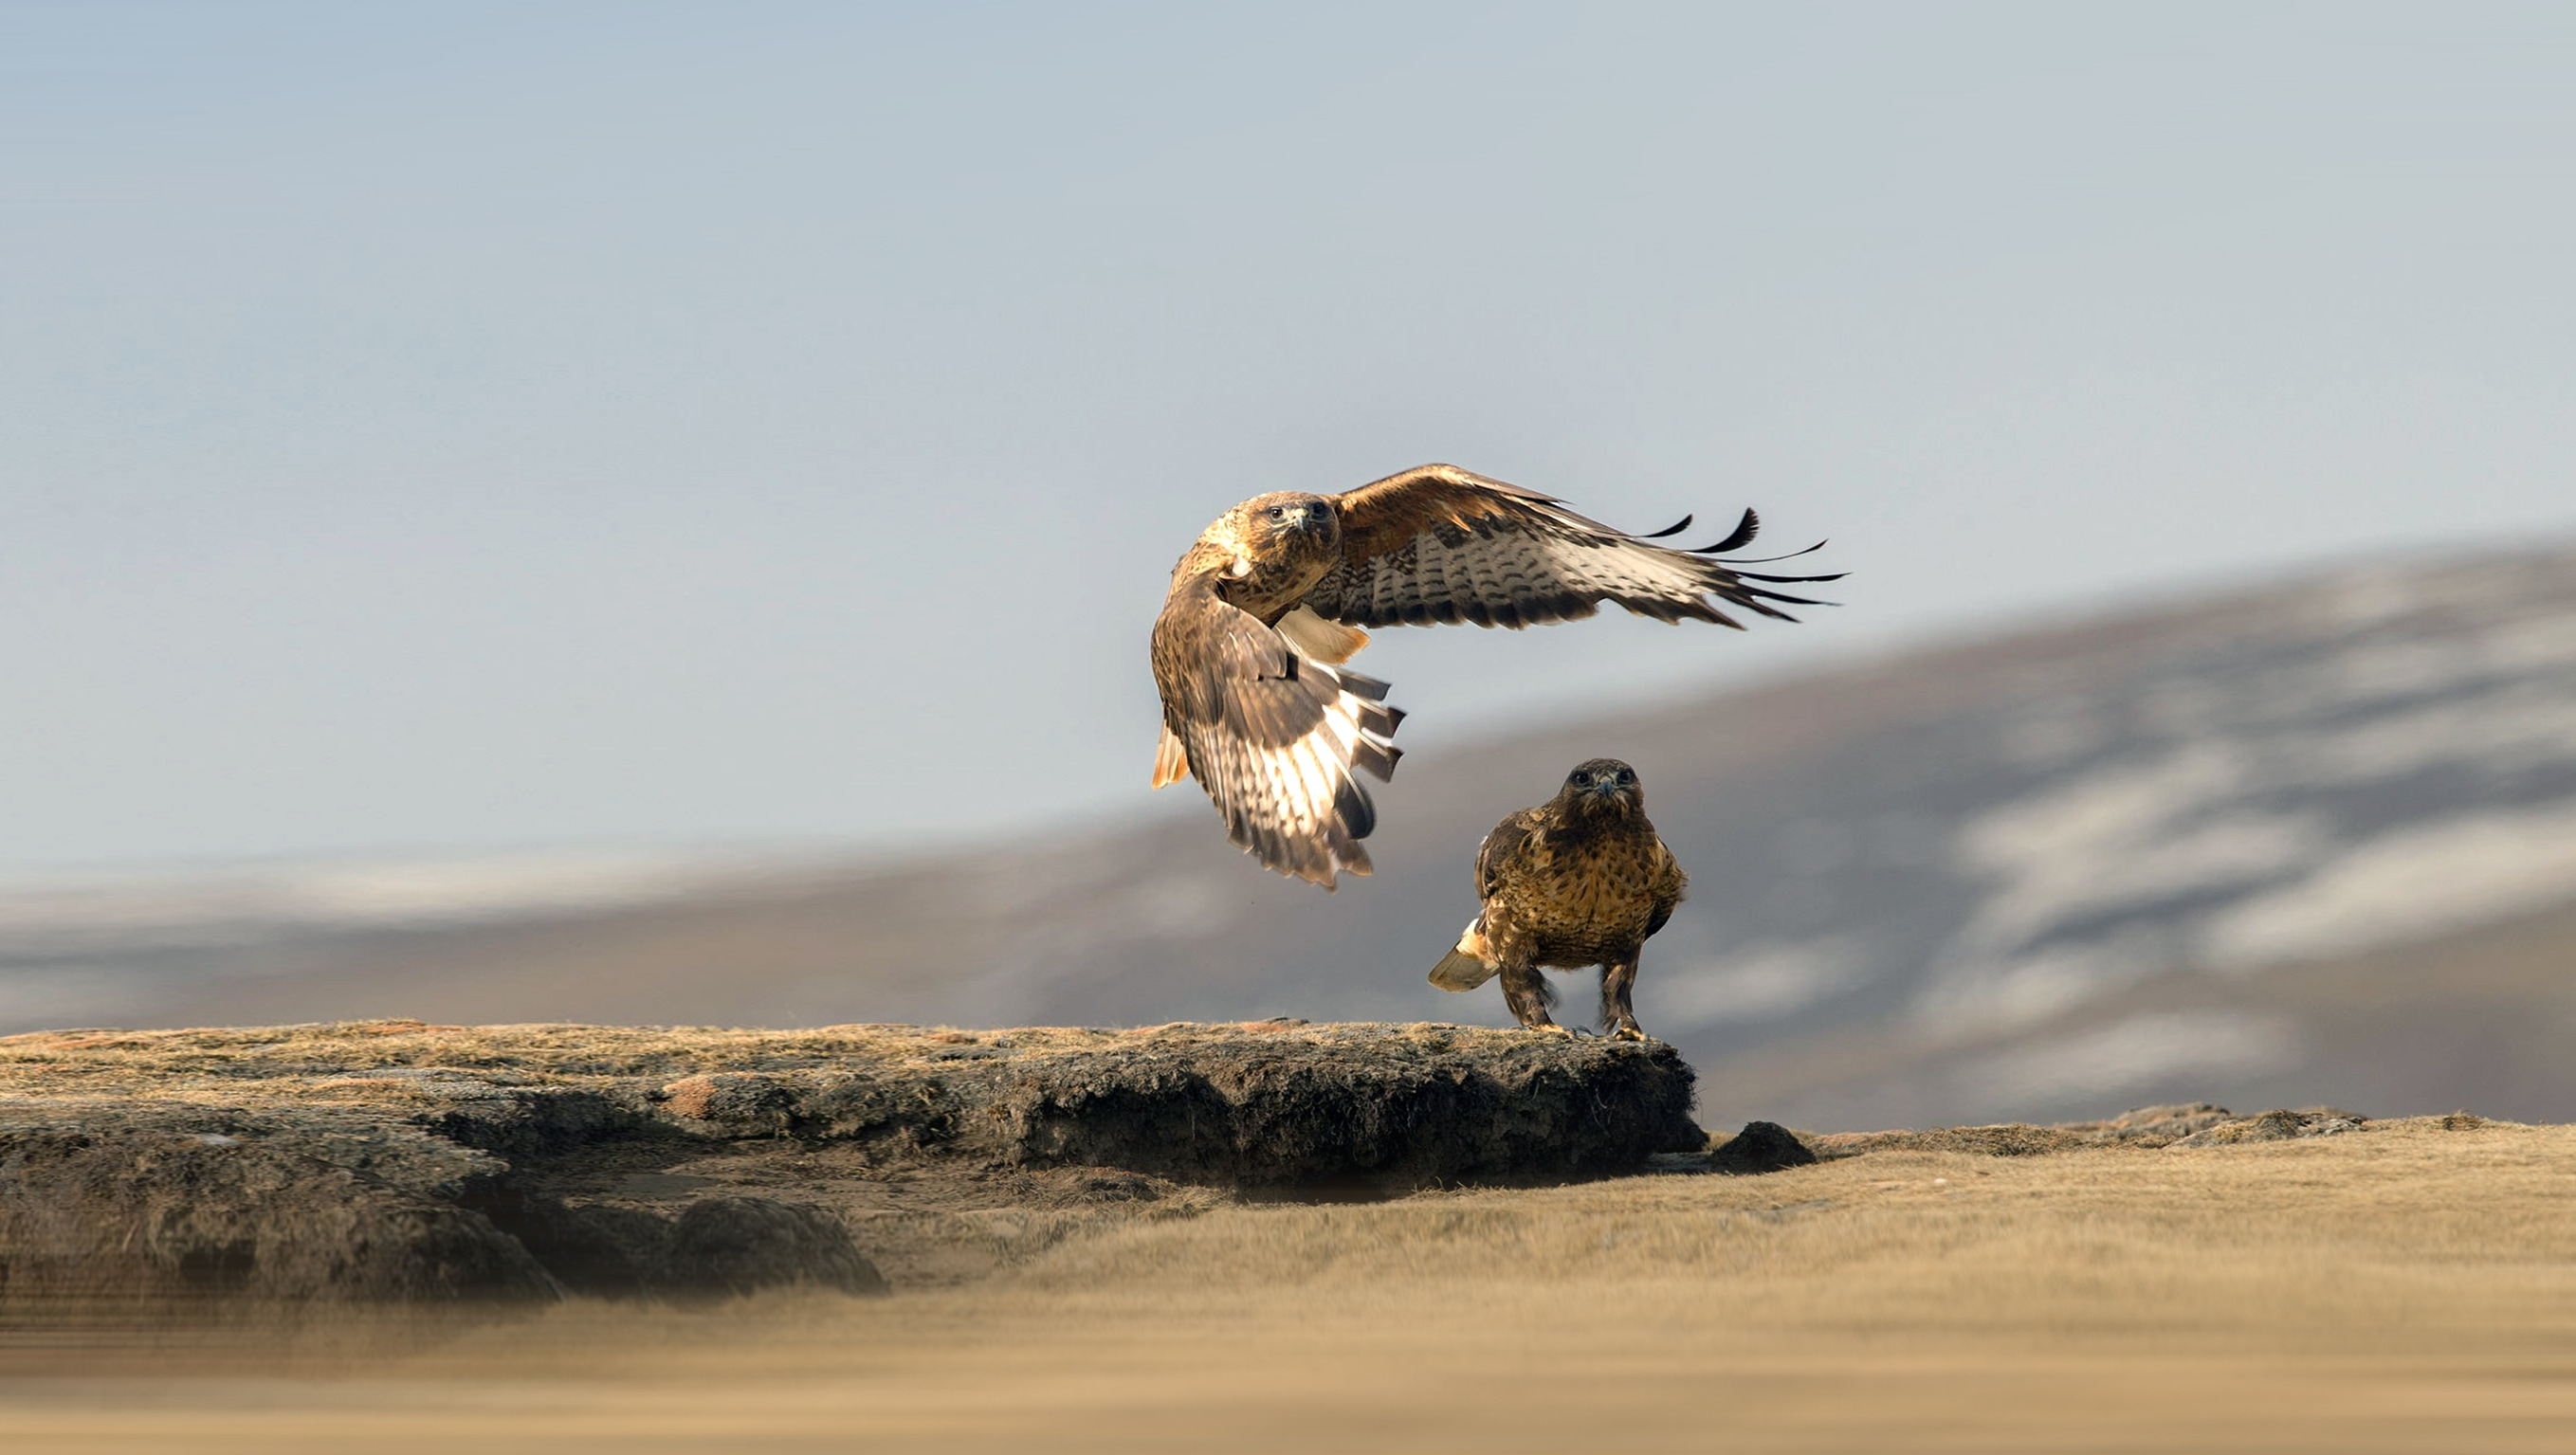 The upland buzzard is a solitary bird, and pairs up only during breeding season when they go through a courtship and nesting period. Photo: Wang LiQiang/Shutterstock